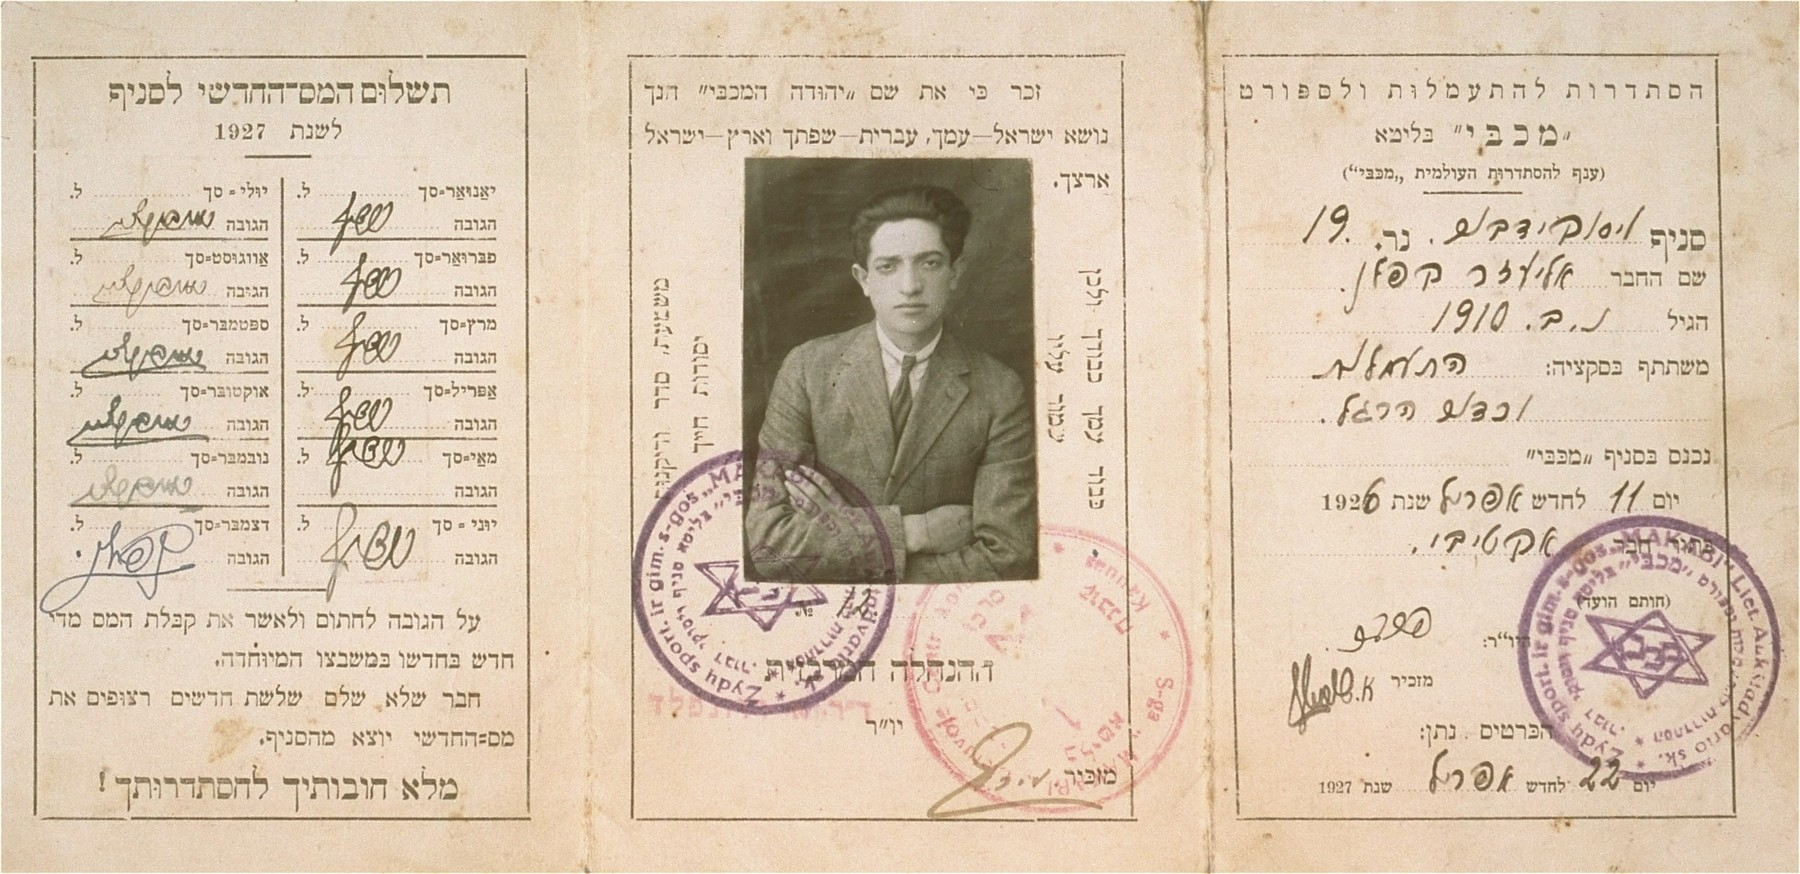 Membership card for the Maccabi Sports Organization in Lithuania, Visokidbor branch, issued to Eliezer Kaplan on April 22, 1927. Kaplan is registered as a participant in the gymnastics and soccer divisions of the organization.